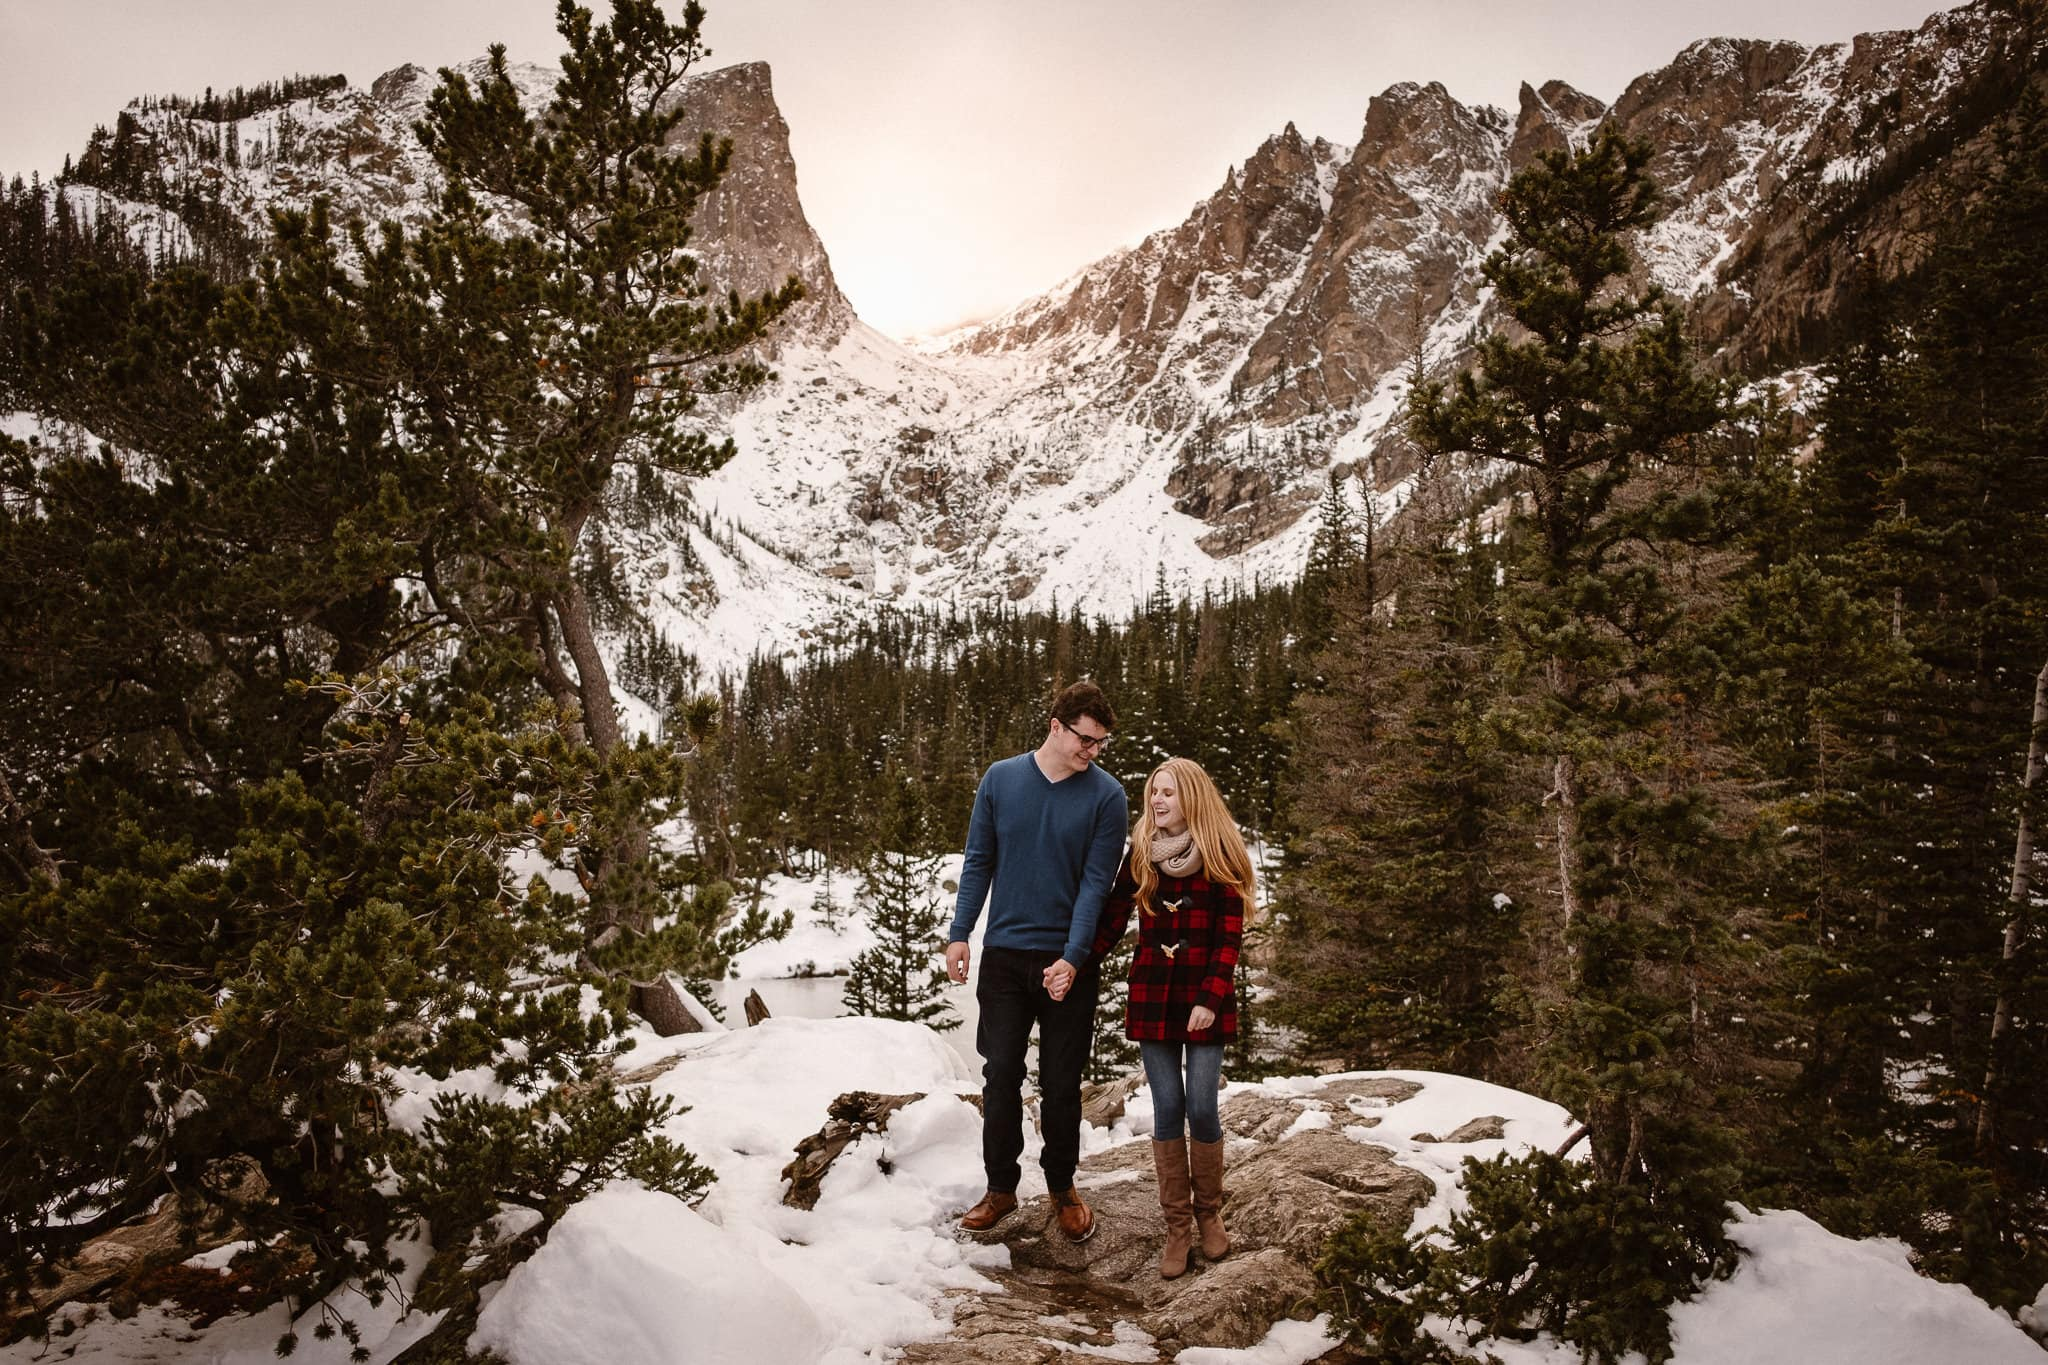 RMNP Engagement Photographer, winter engagement session, Dream Lake, Rocky Mountain National Park engagement, hiking engagement, couples portraits, Colorado engagement photographer, alpine lake, mountain views